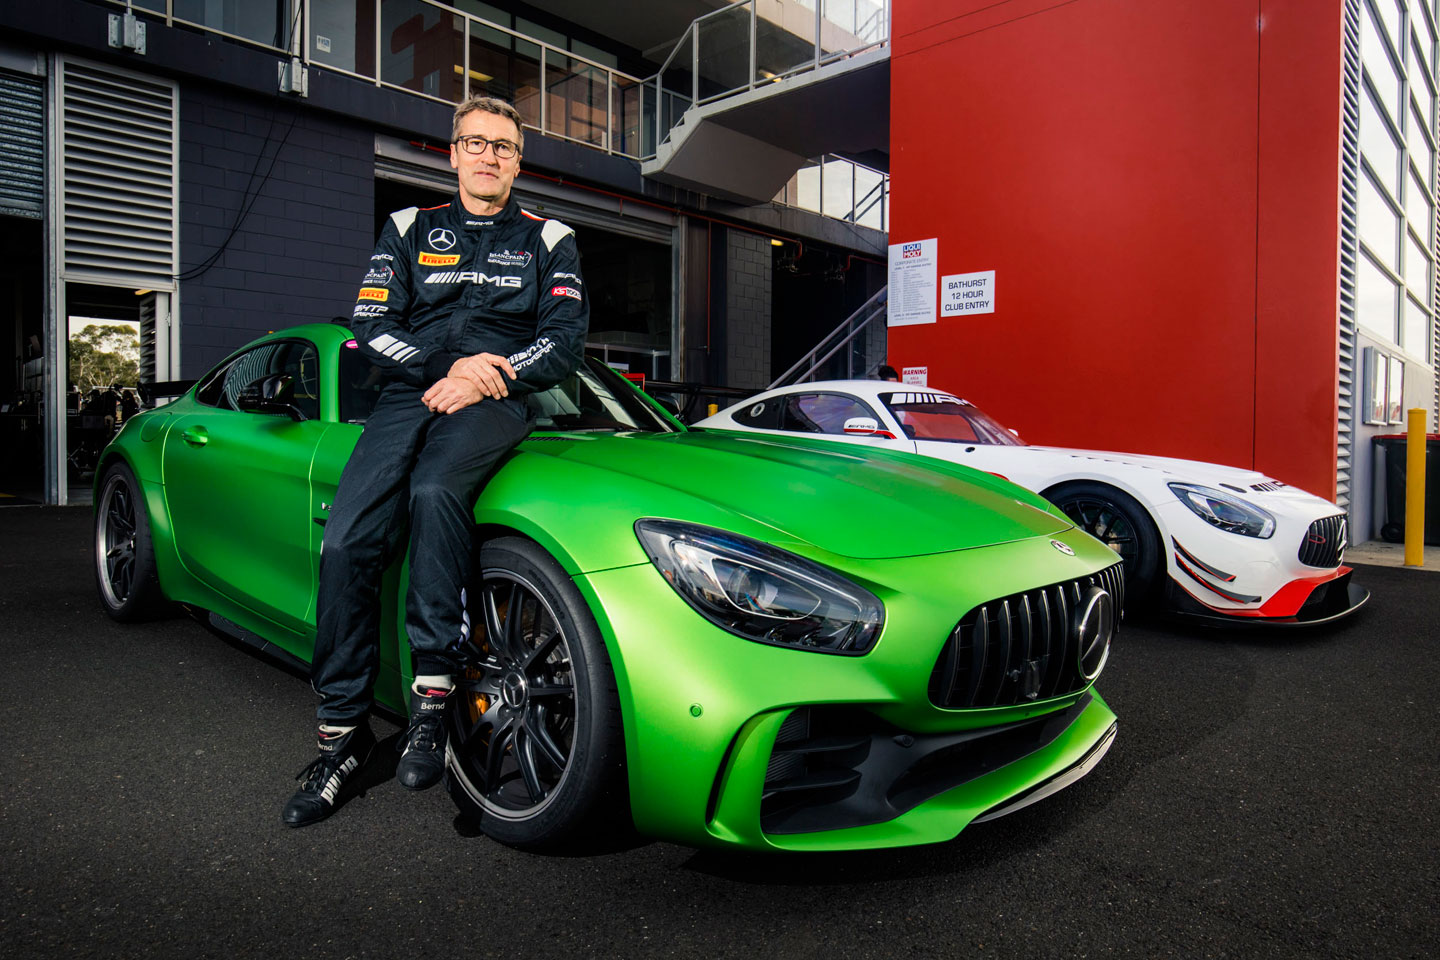 mercedes amg gt r smashes lap record at mount panorama video. Black Bedroom Furniture Sets. Home Design Ideas